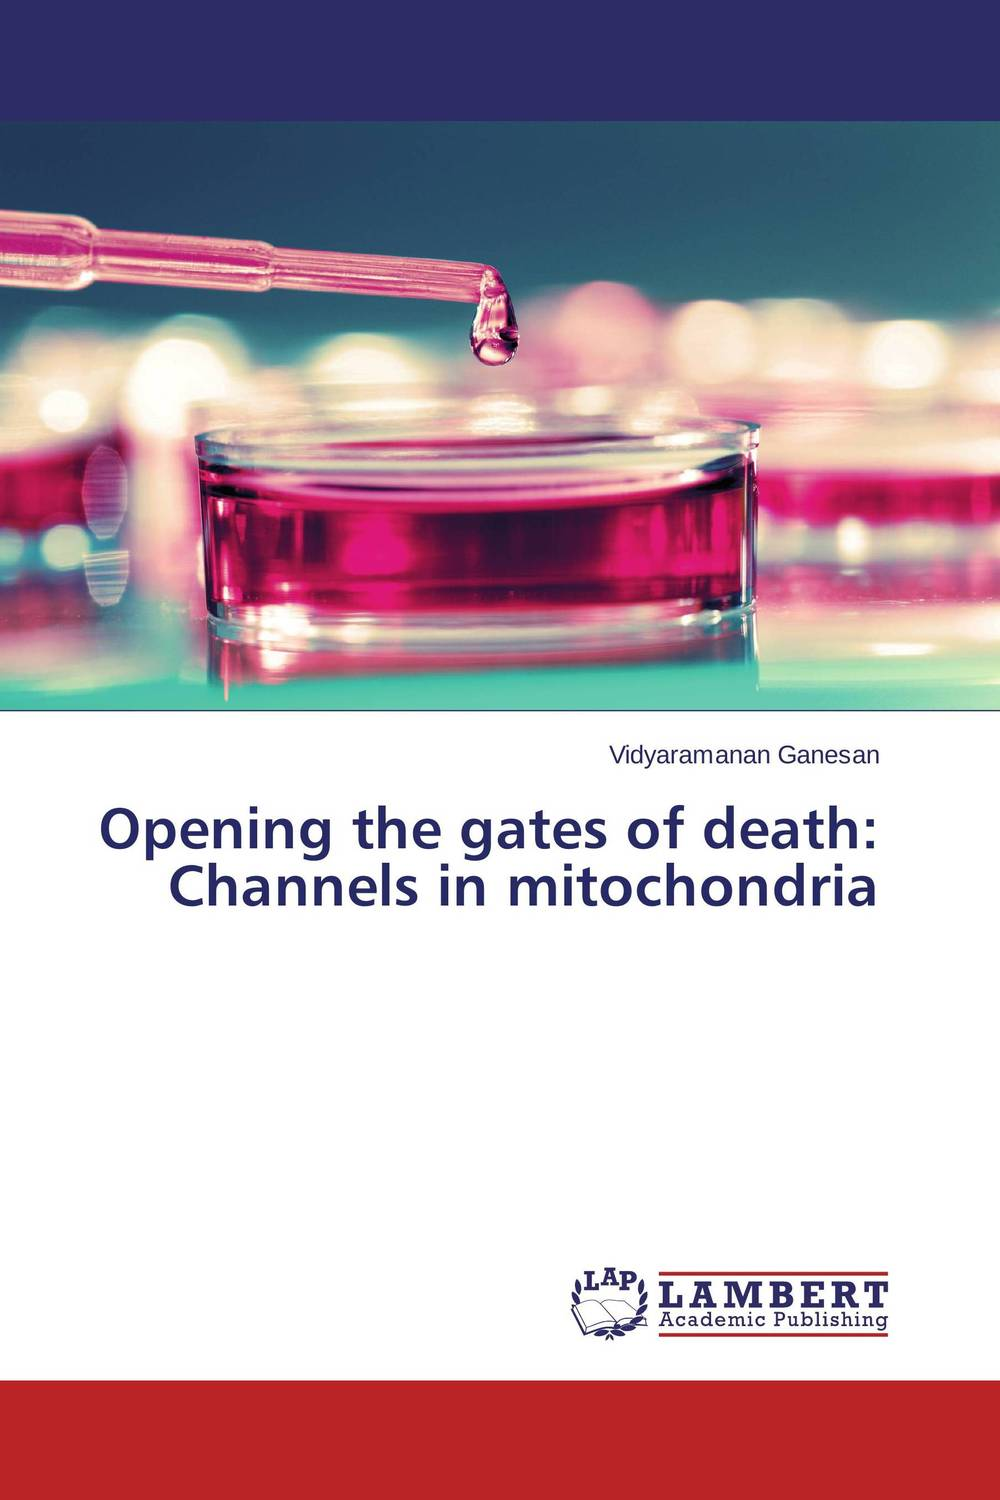 Opening the gates of death: Channels in mitochondria understanding death